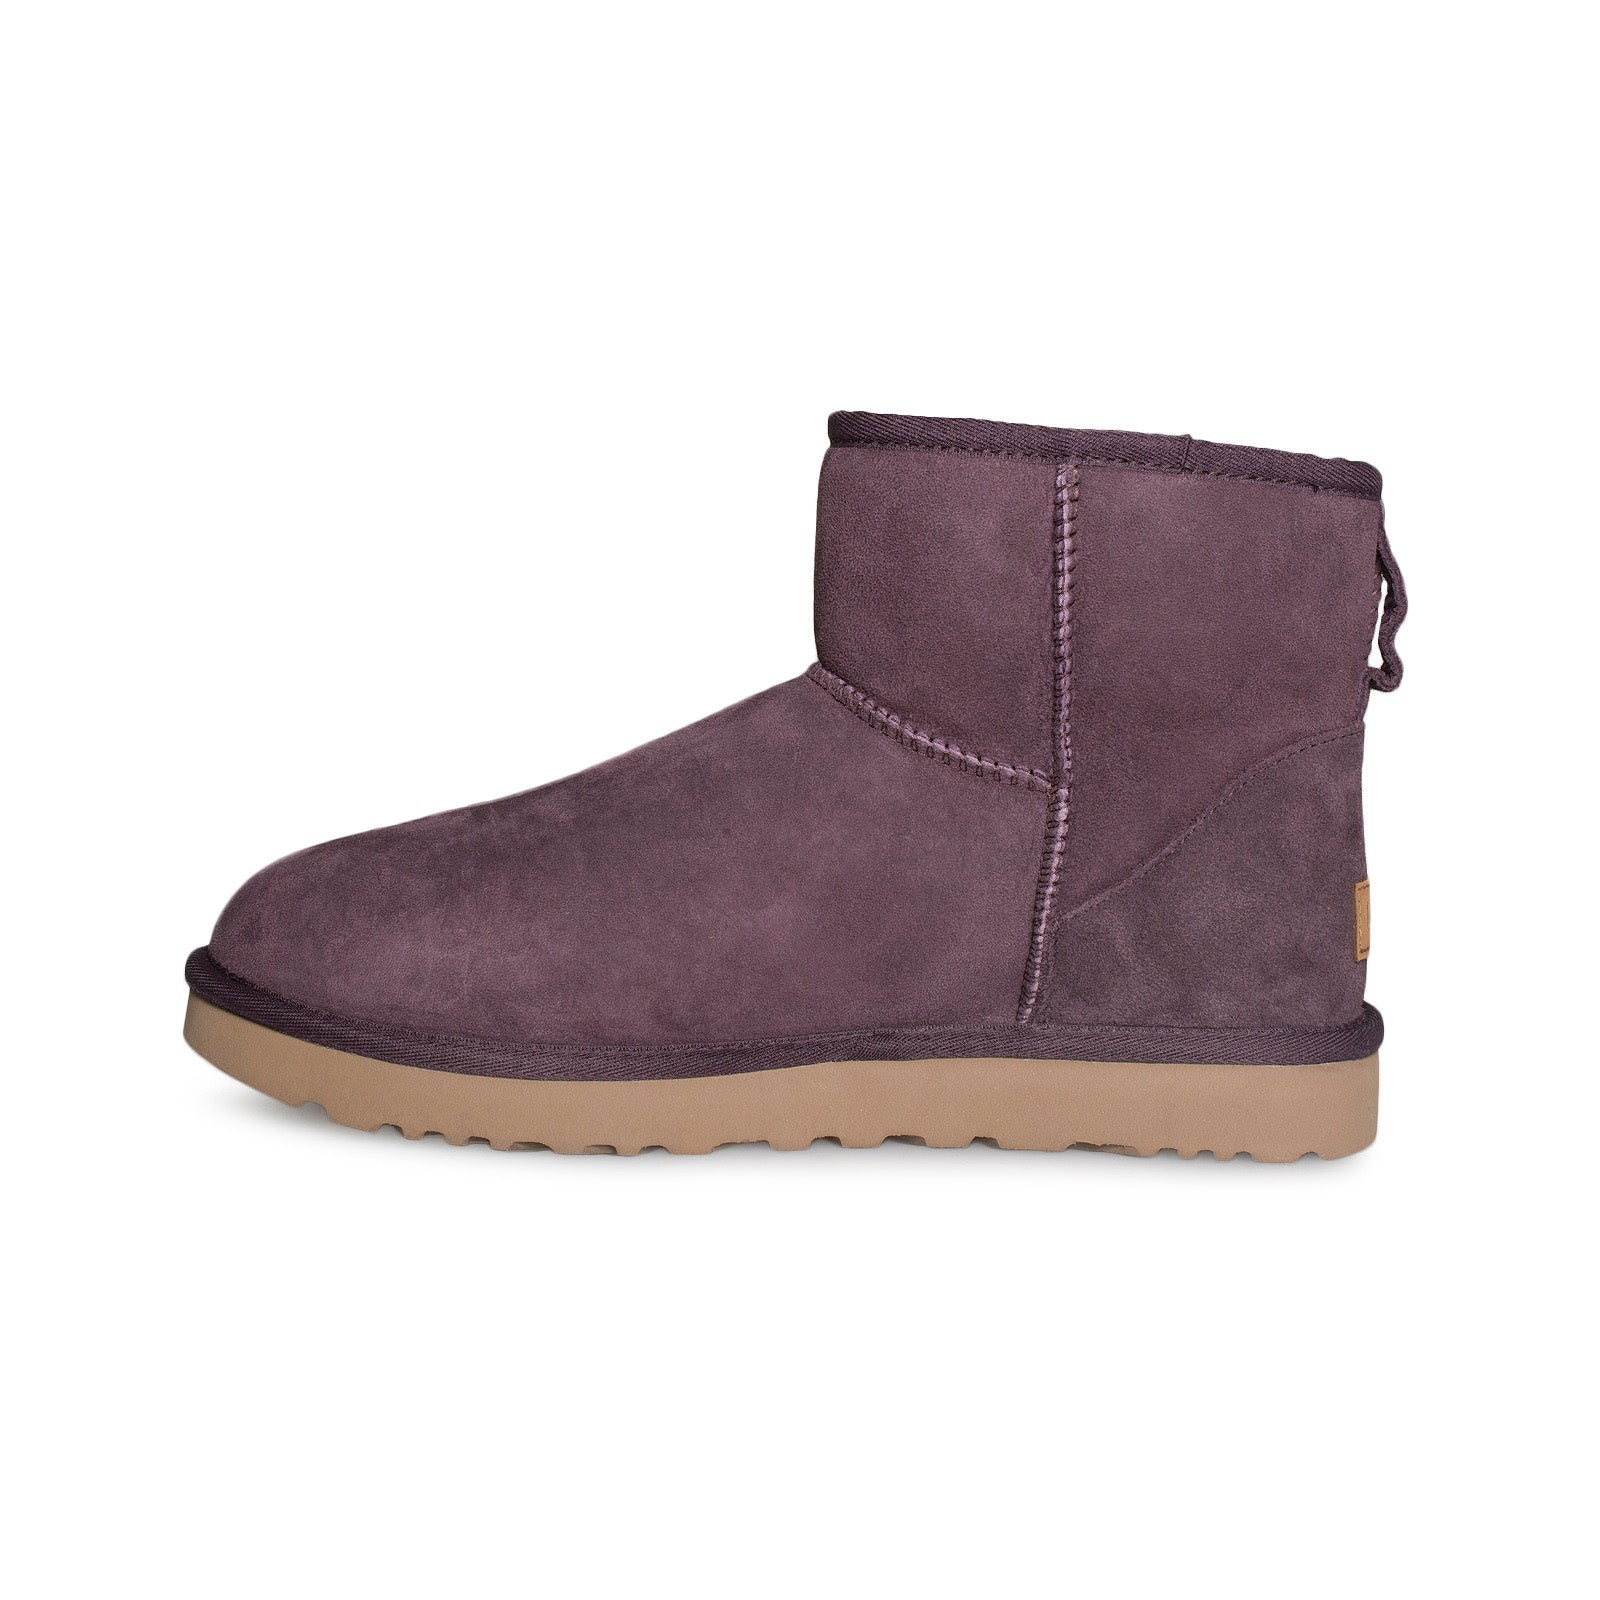 698829dcee2 Women's Boots Tagged